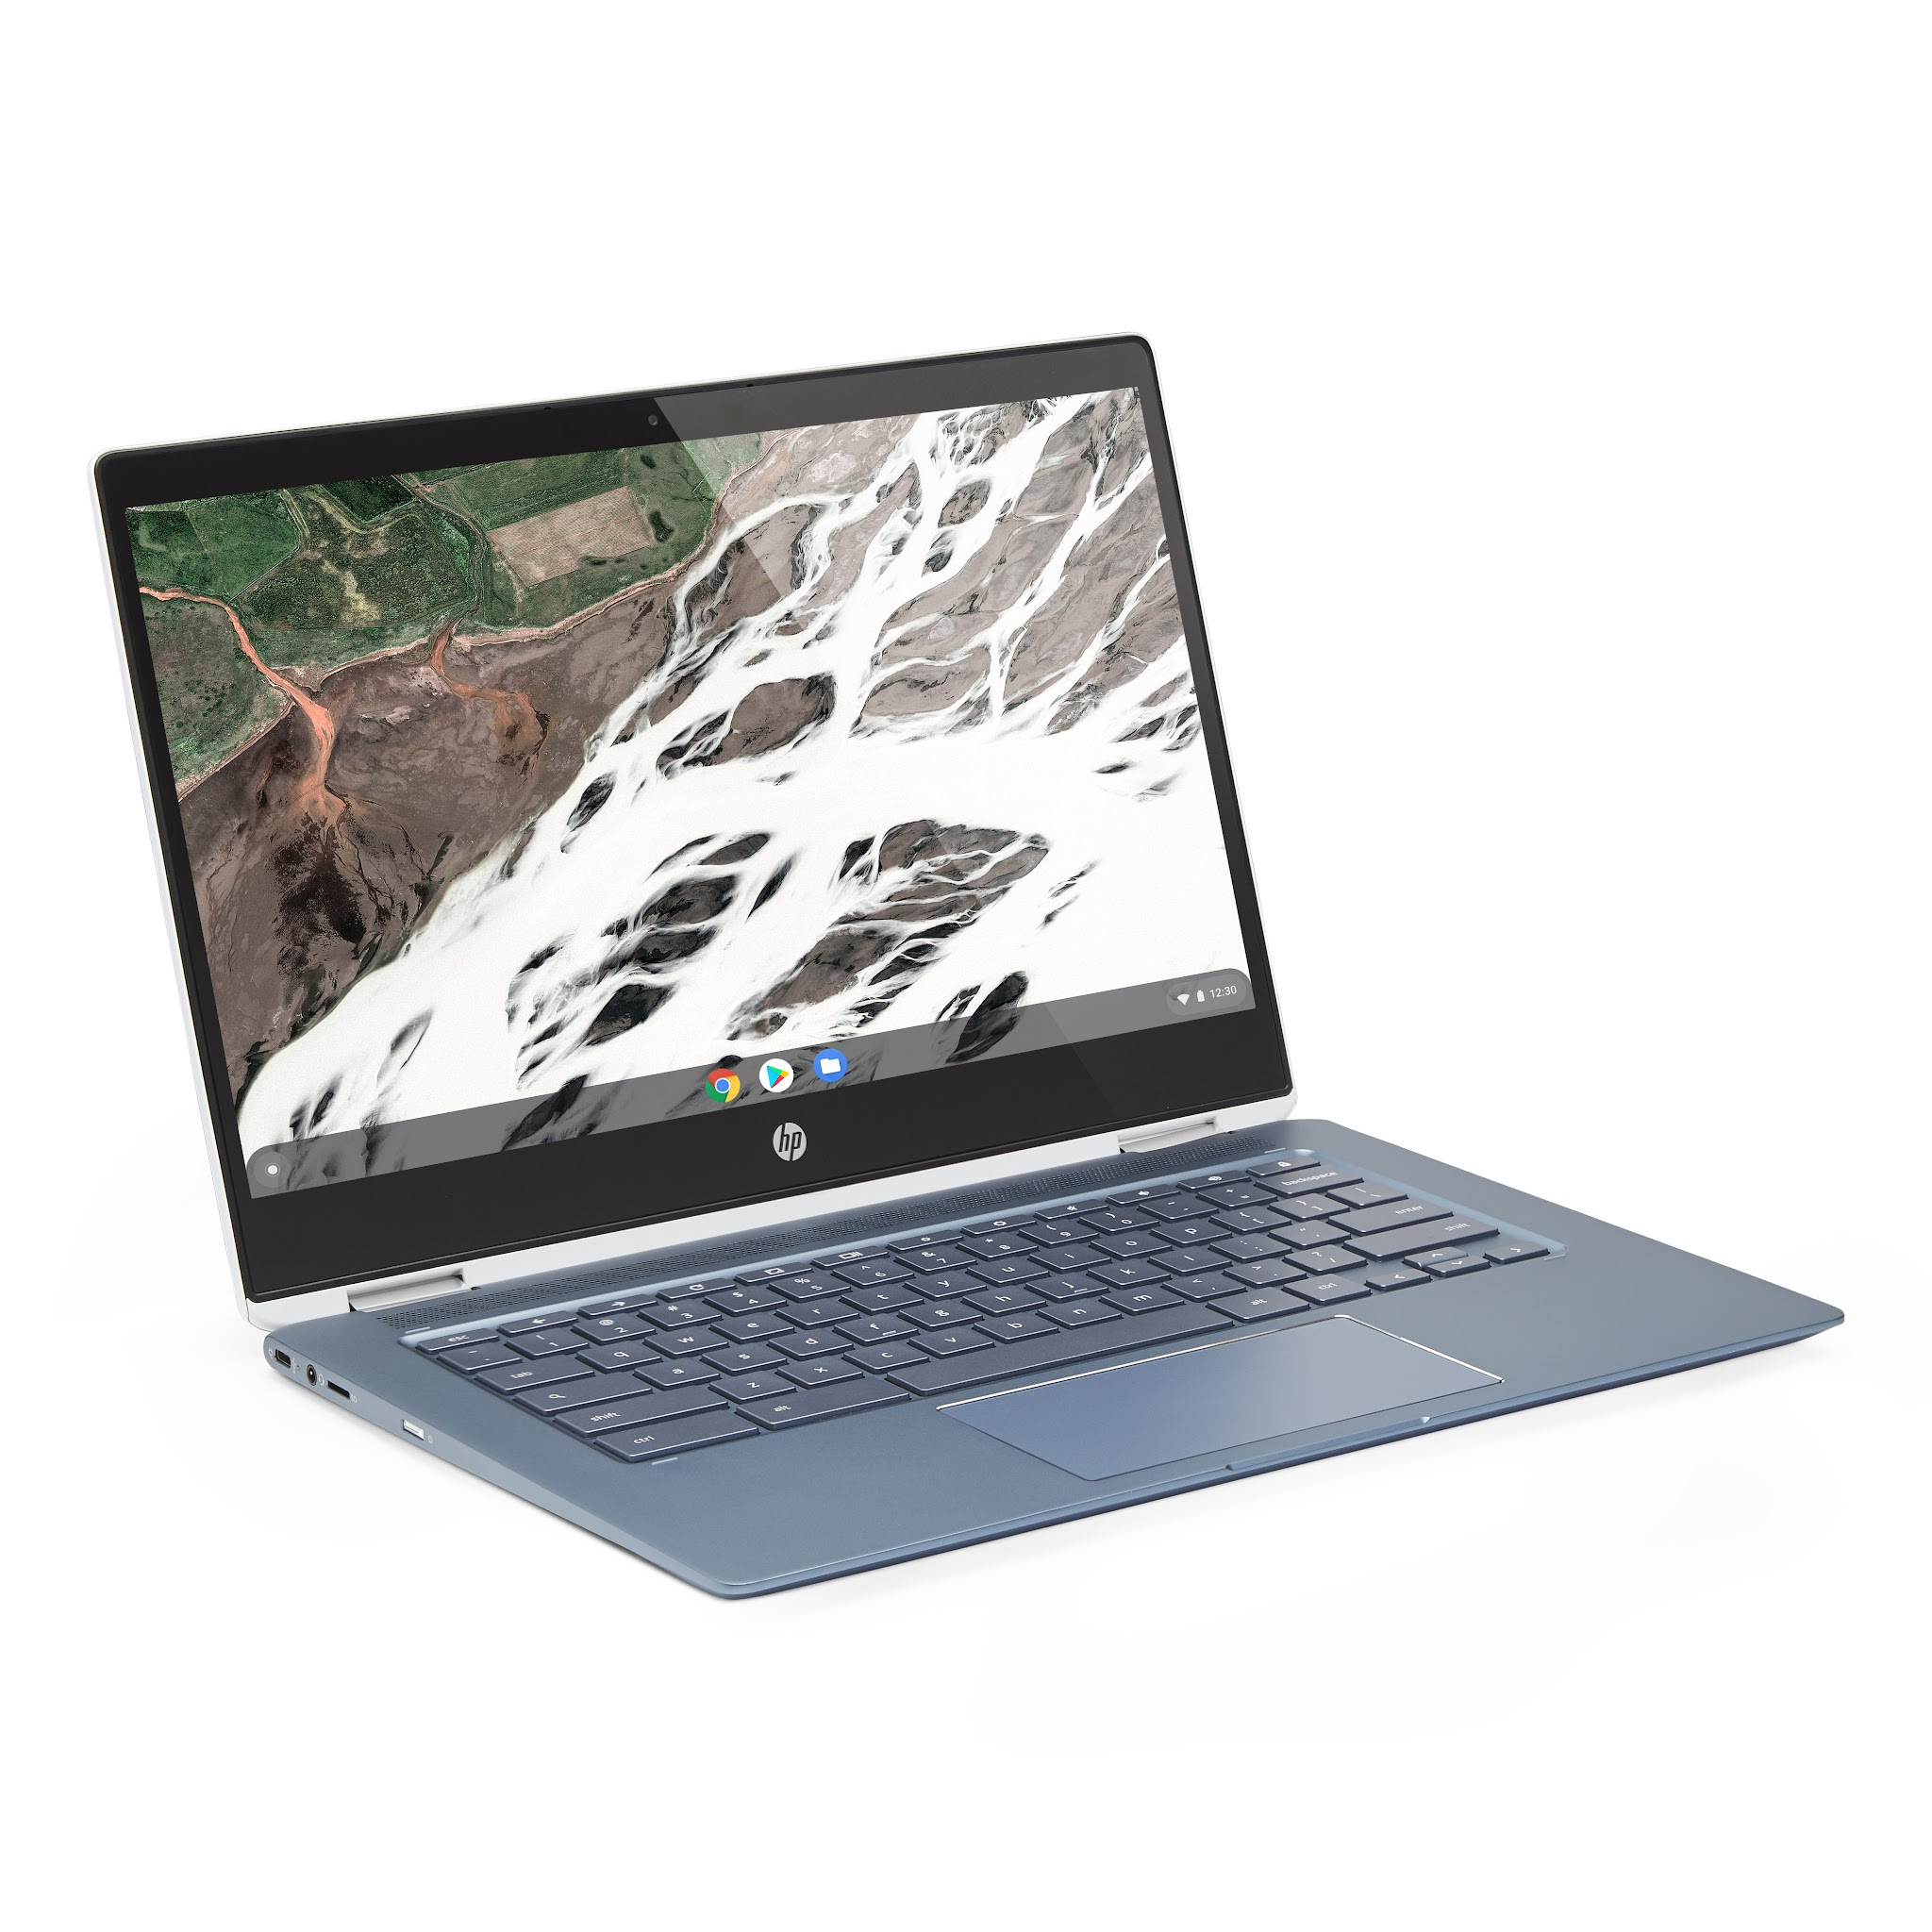 HP Chromebook x360 14 – Google Chromebooks